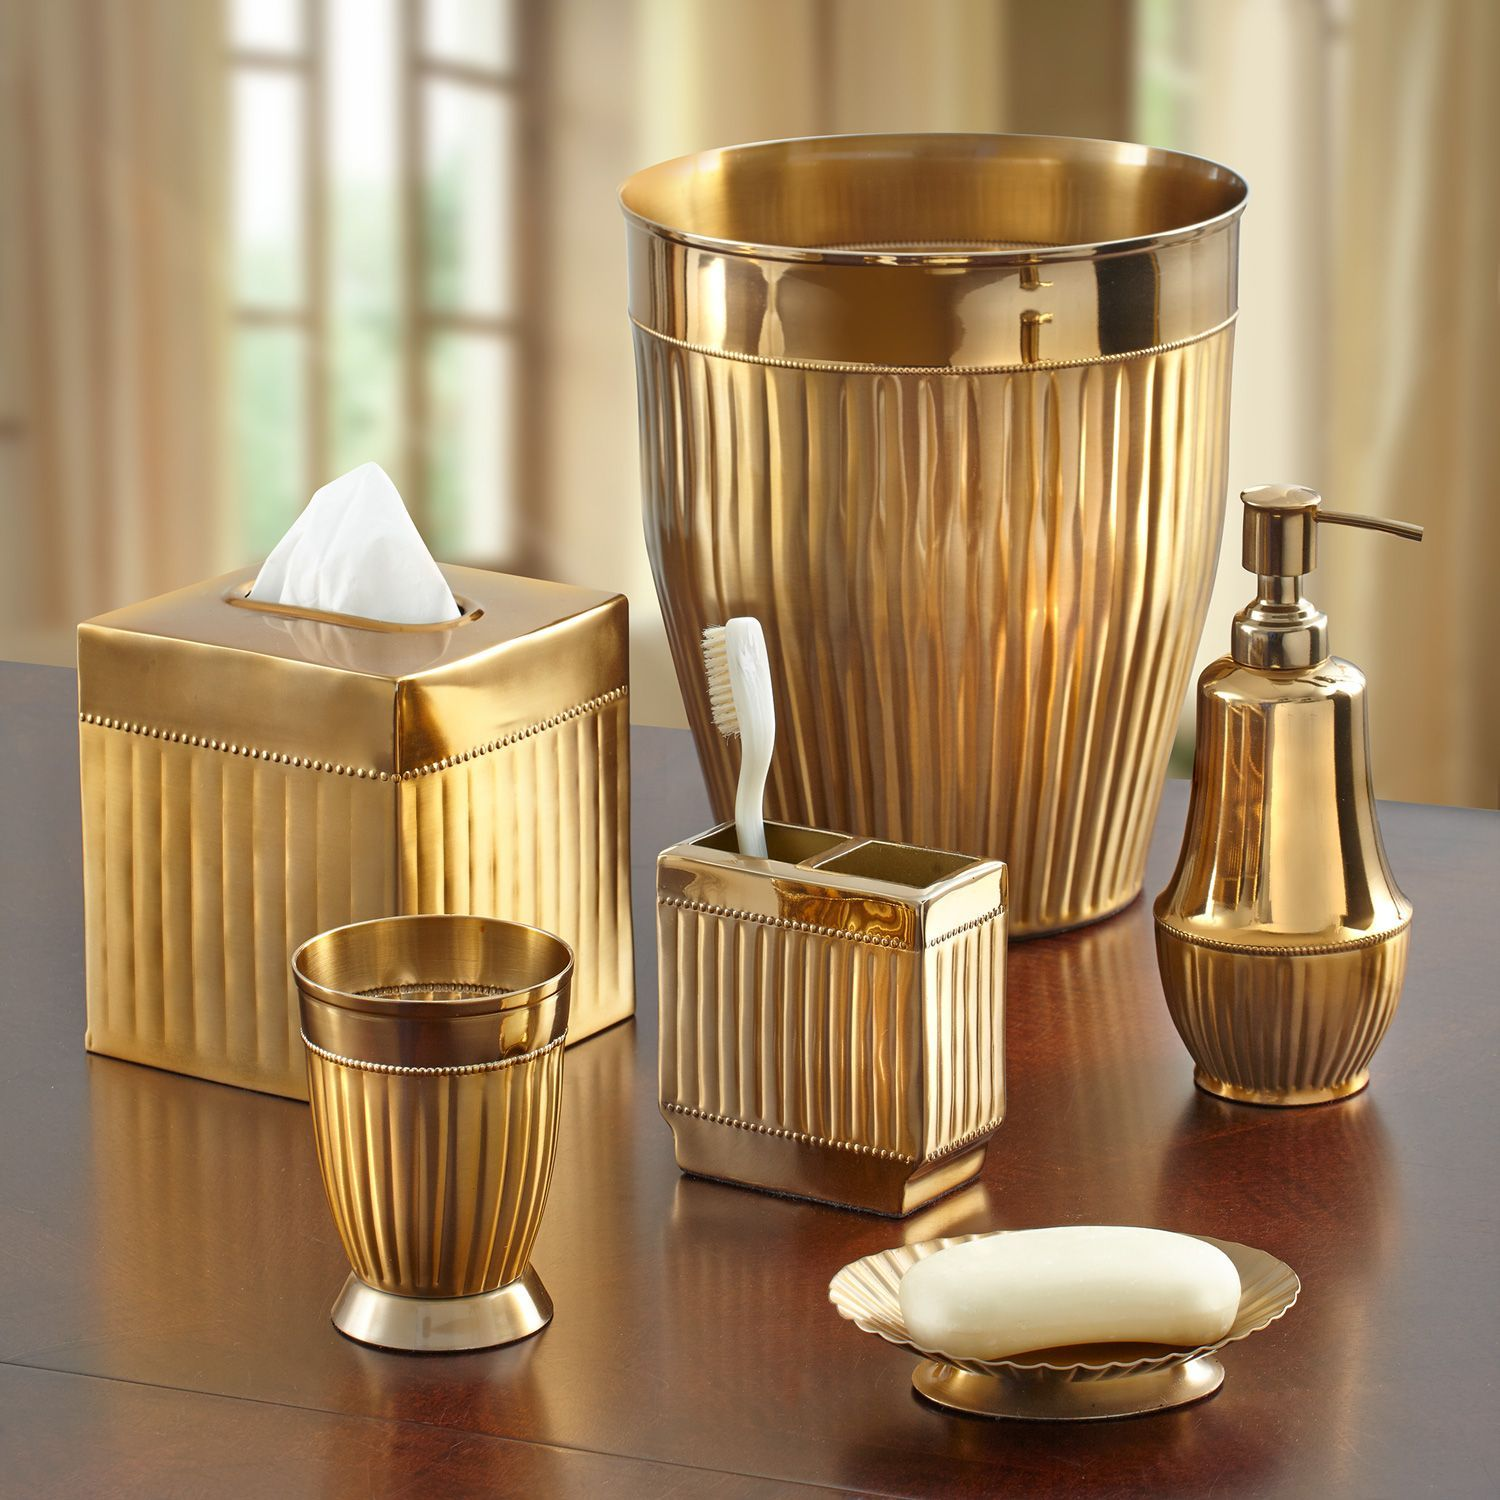 The Luciano Bathroom Collection Features Gold Metal Accessories With  Classic Contours, Fluted Surfaces And Beaded